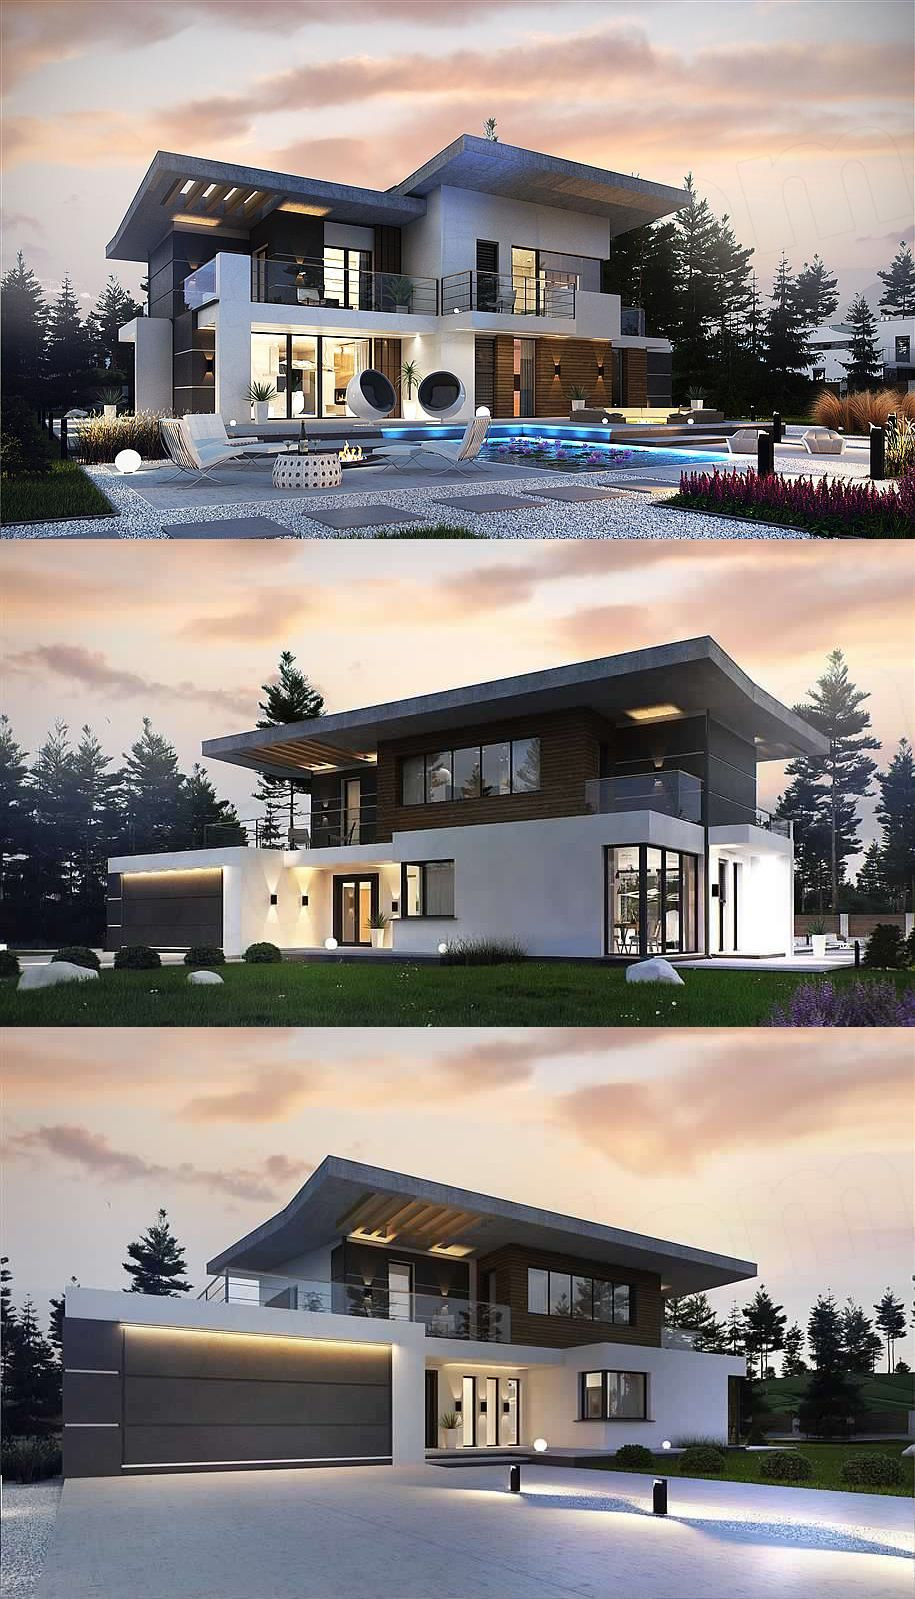 Luxury House Concept With 2 Car Garage Pool Area House Structure Design Model House Plan Two Storey House Plans